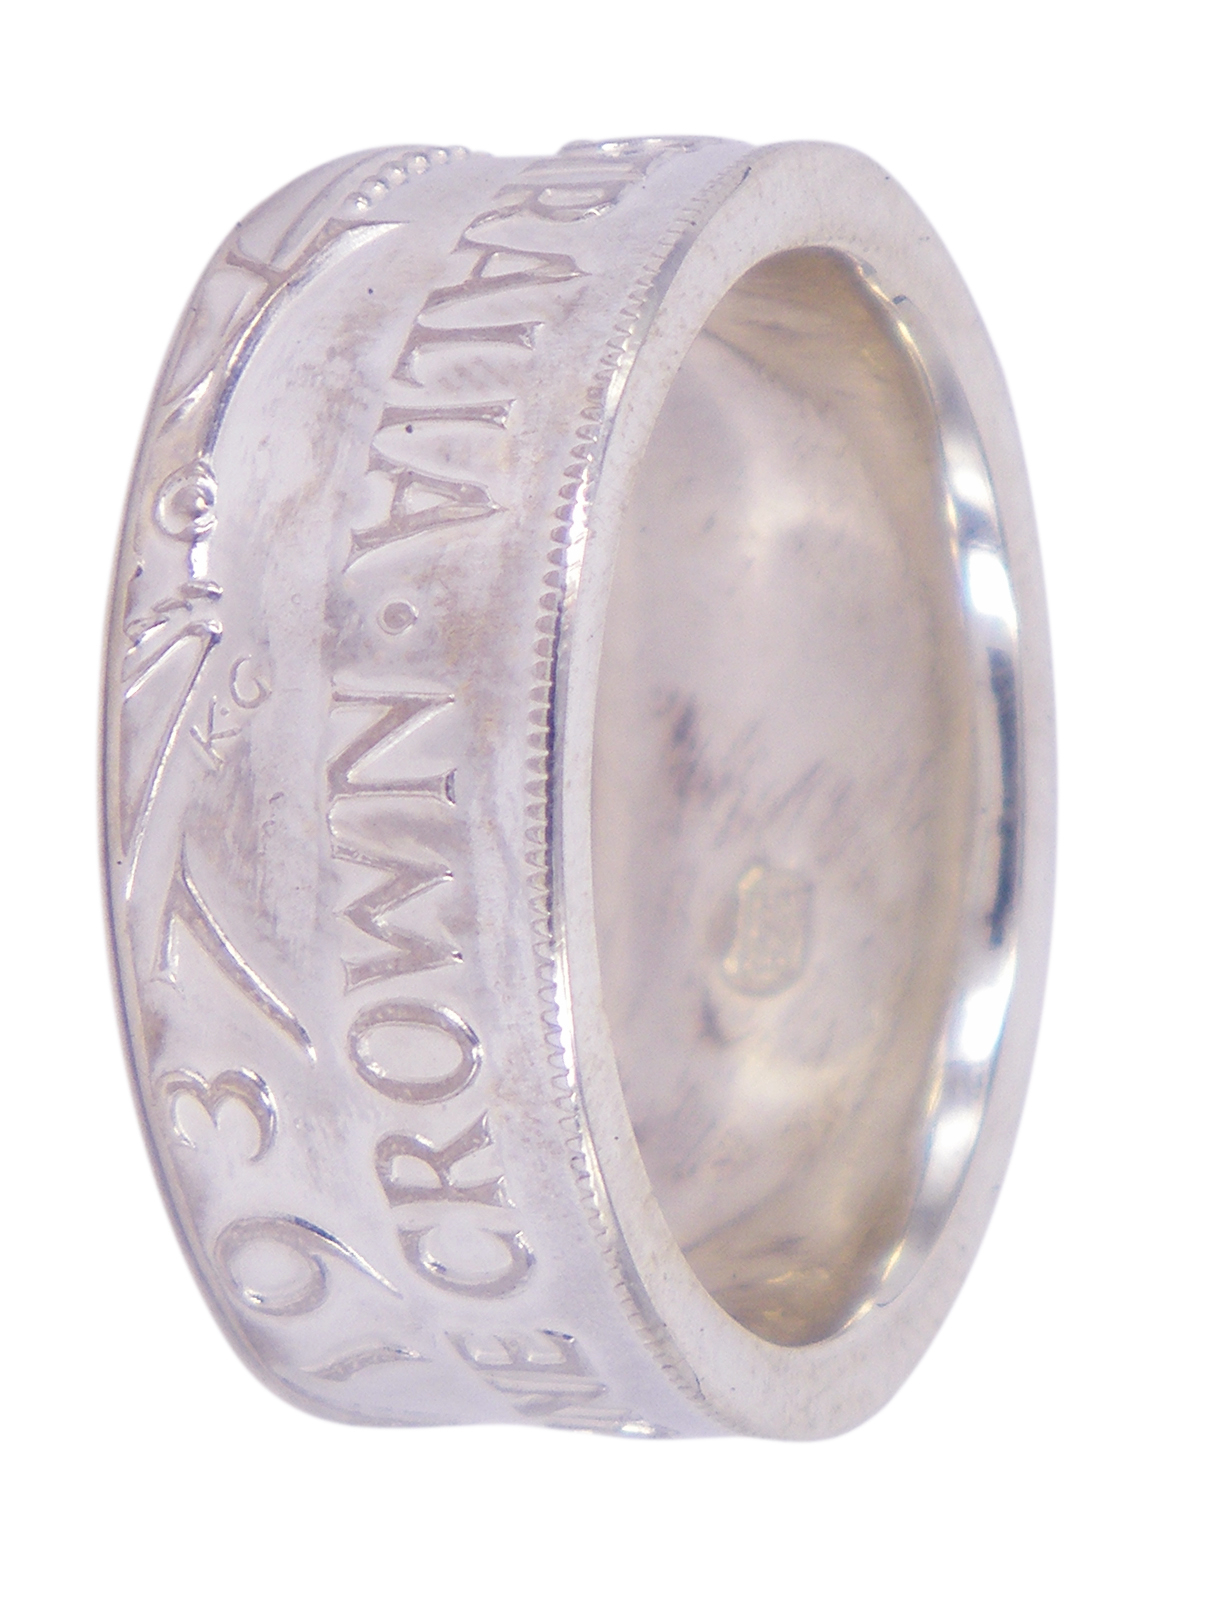 1937 Crown Large Polished Ring | Lord Coconut Pertaining To Most Recent Polished Crown Rings (View 2 of 25)